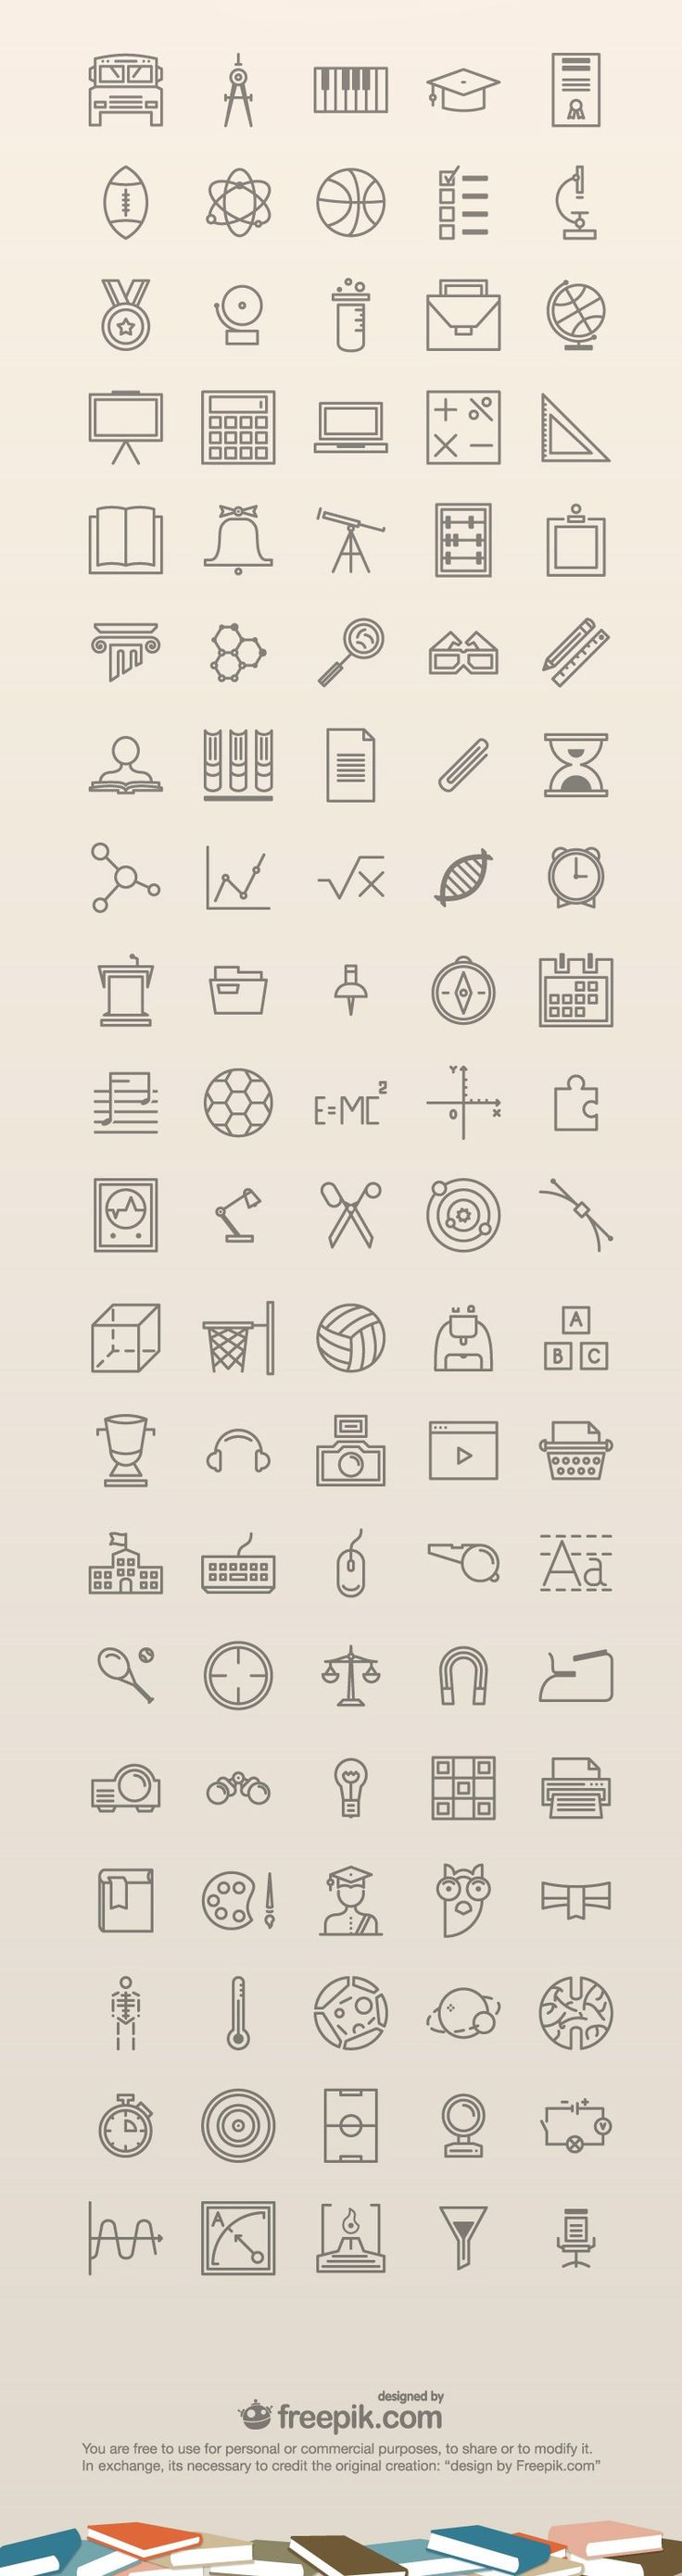 100 Free Education Icons